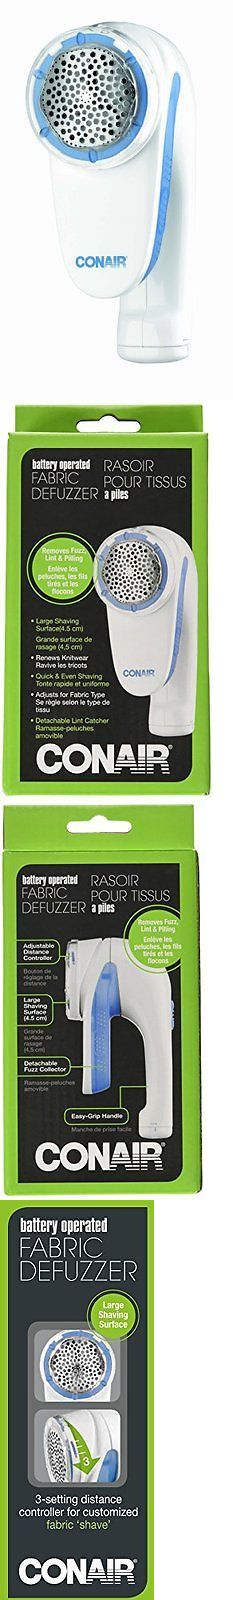 Lint Removers and Lint Shavers 170626: Conair Battery Operated Fabric Defuzzer Shaver 3 Distance Settings Free Shipping -> BUY IT NOW ONLY: $31.4 on eBay!